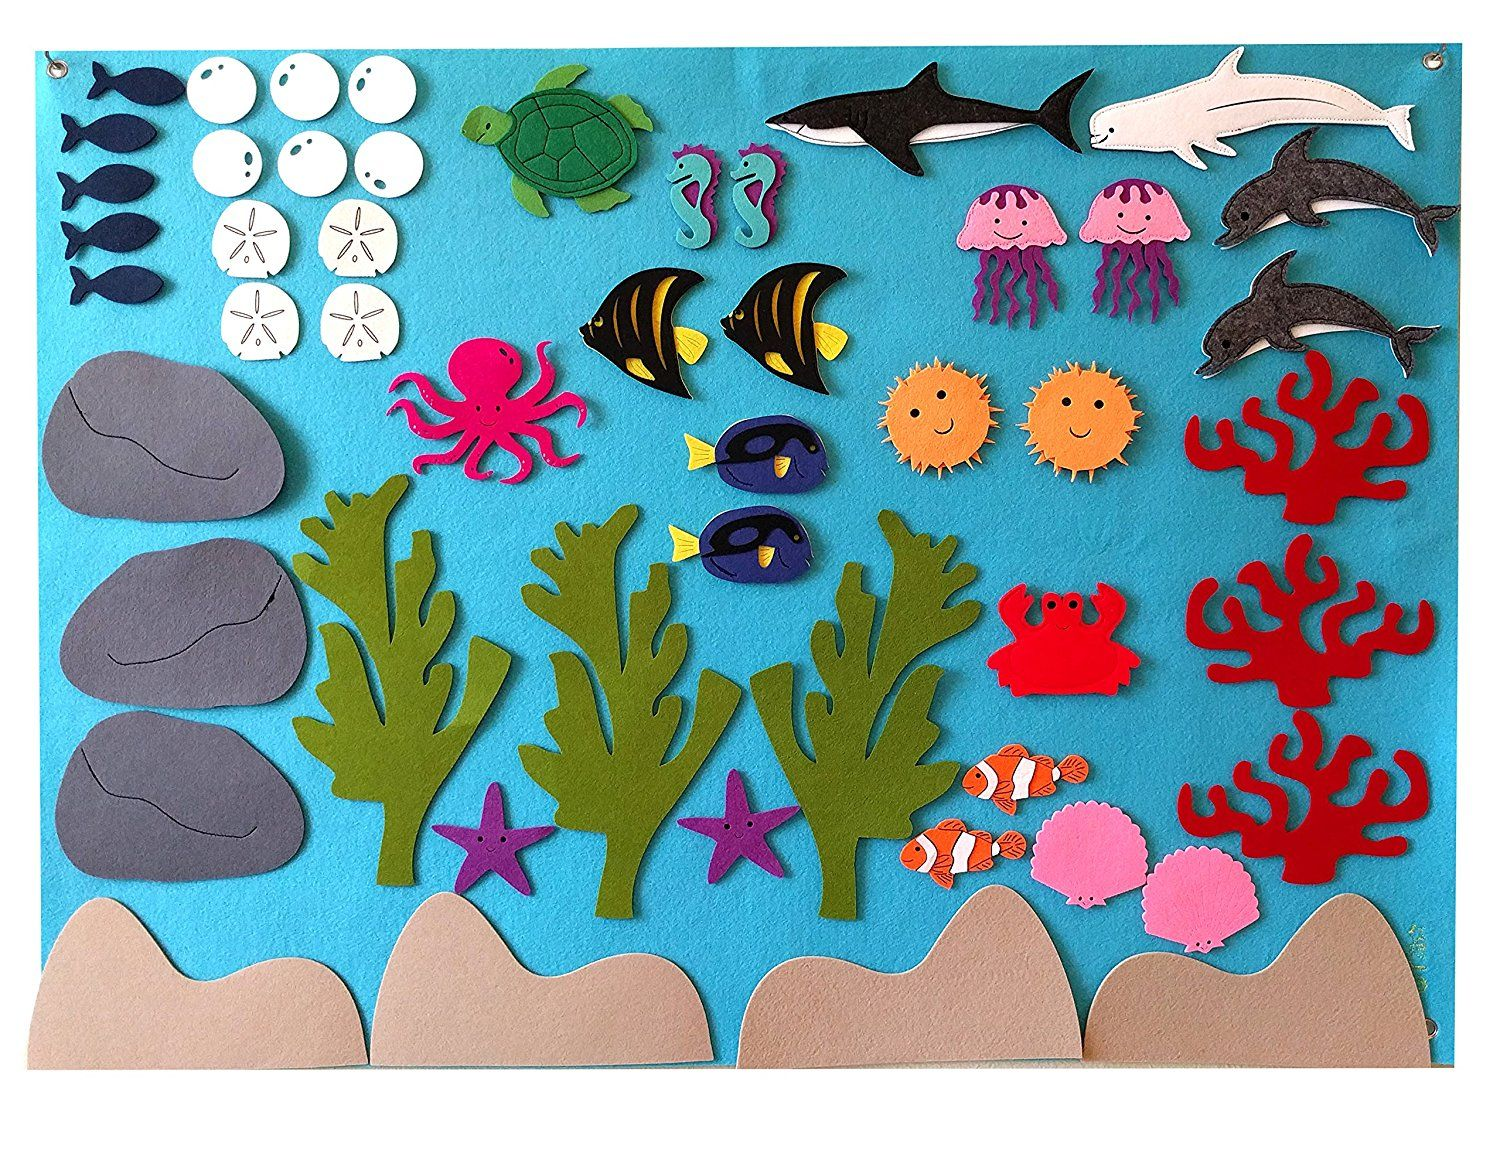 7f5dc35bd76c98 Amazon.com : Felt Flannel Board Under the Sea Ocean Aquarium Fish Animals  Deluxe Set Giant 3.5 Ft 50+ Pieces Wall Hanging Interactive Play Kit Story  DIY ...